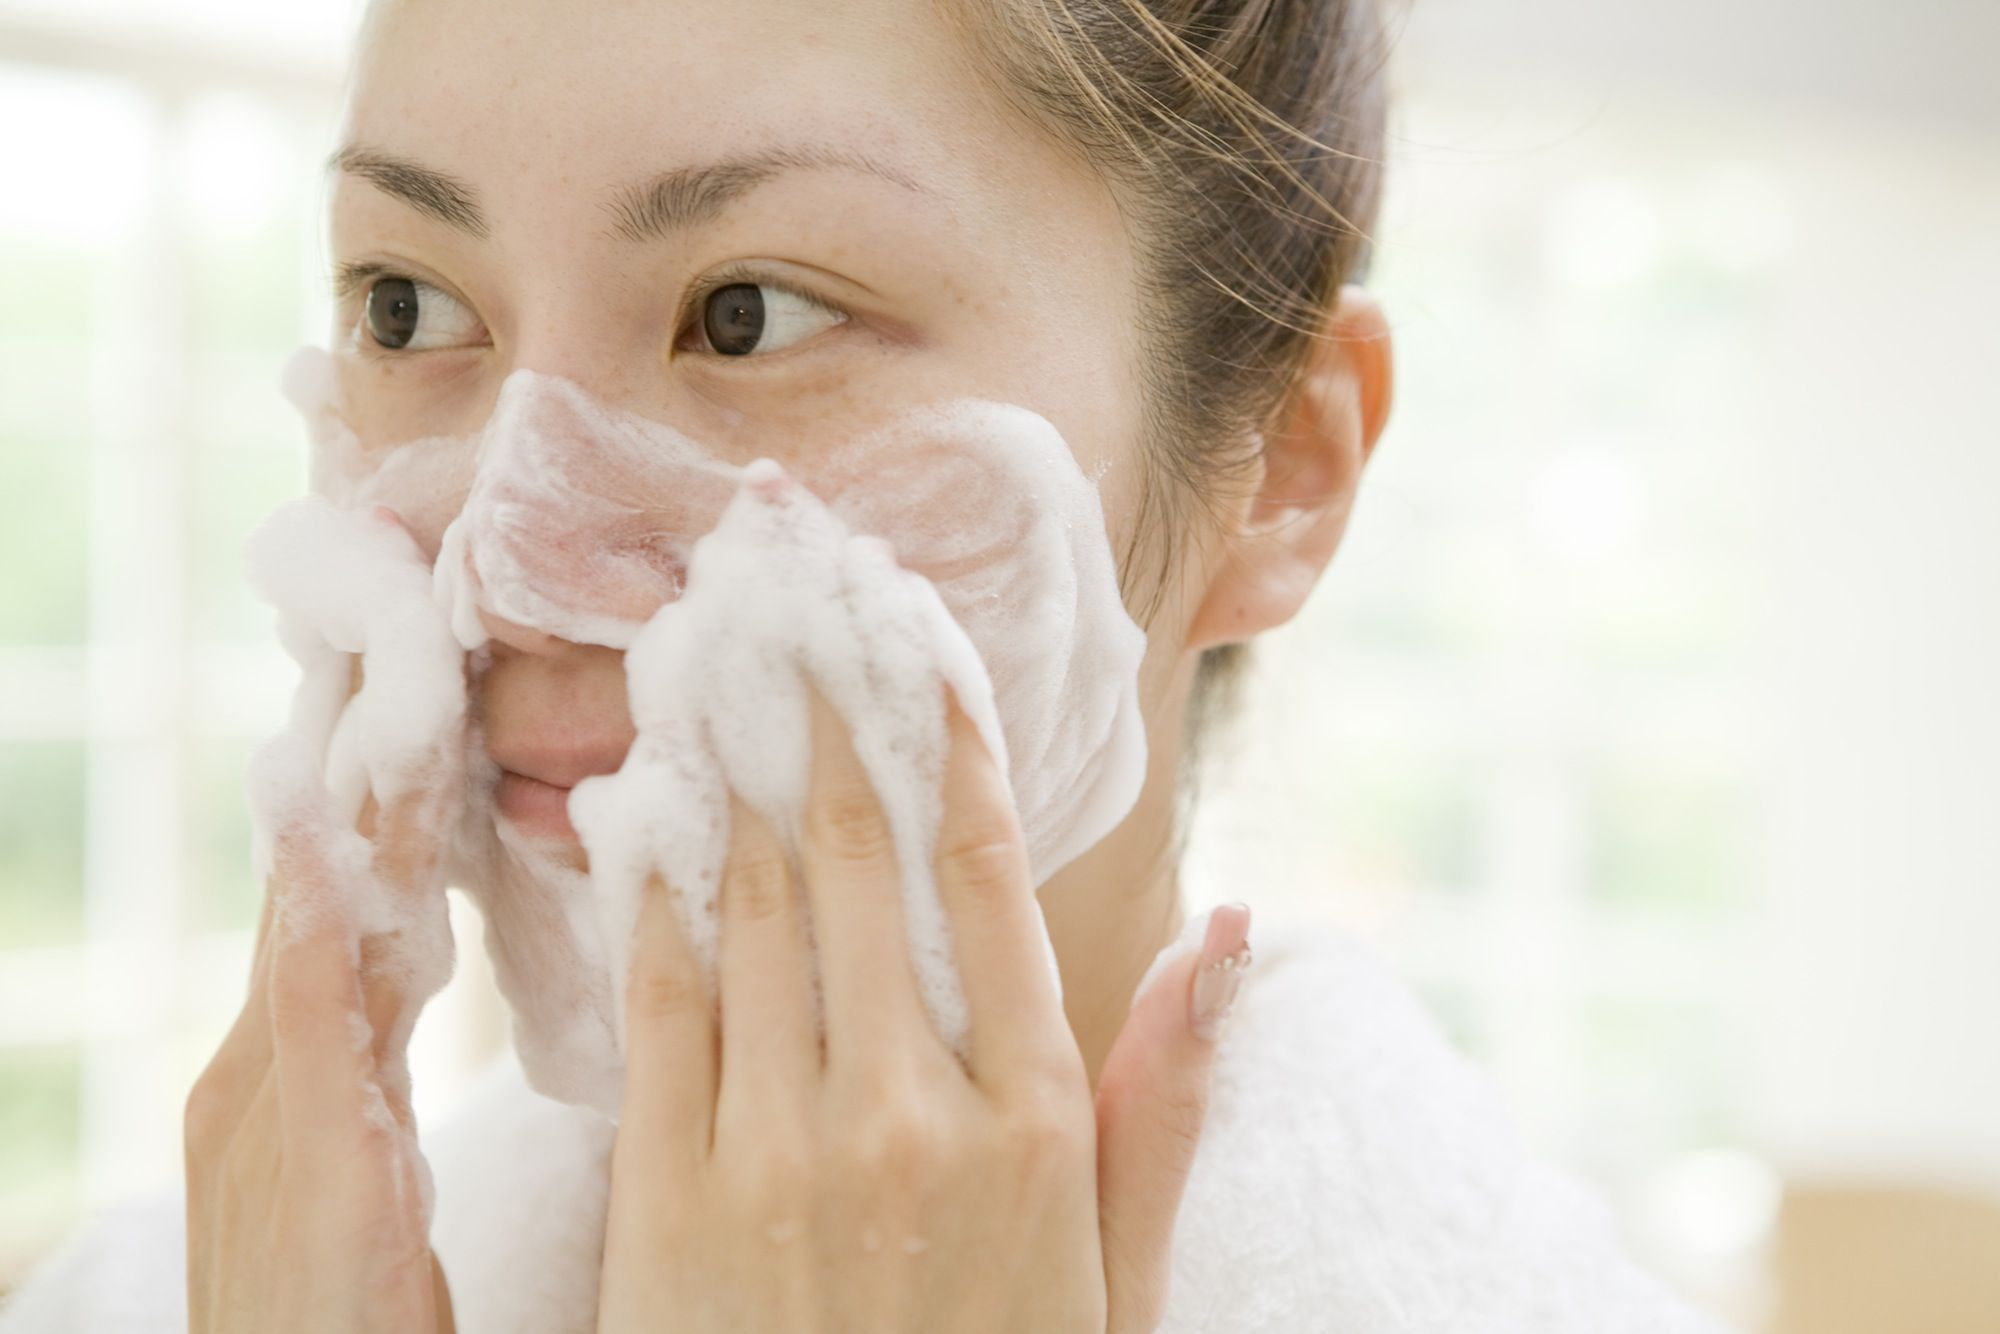 Make Your Own Acne Treatment